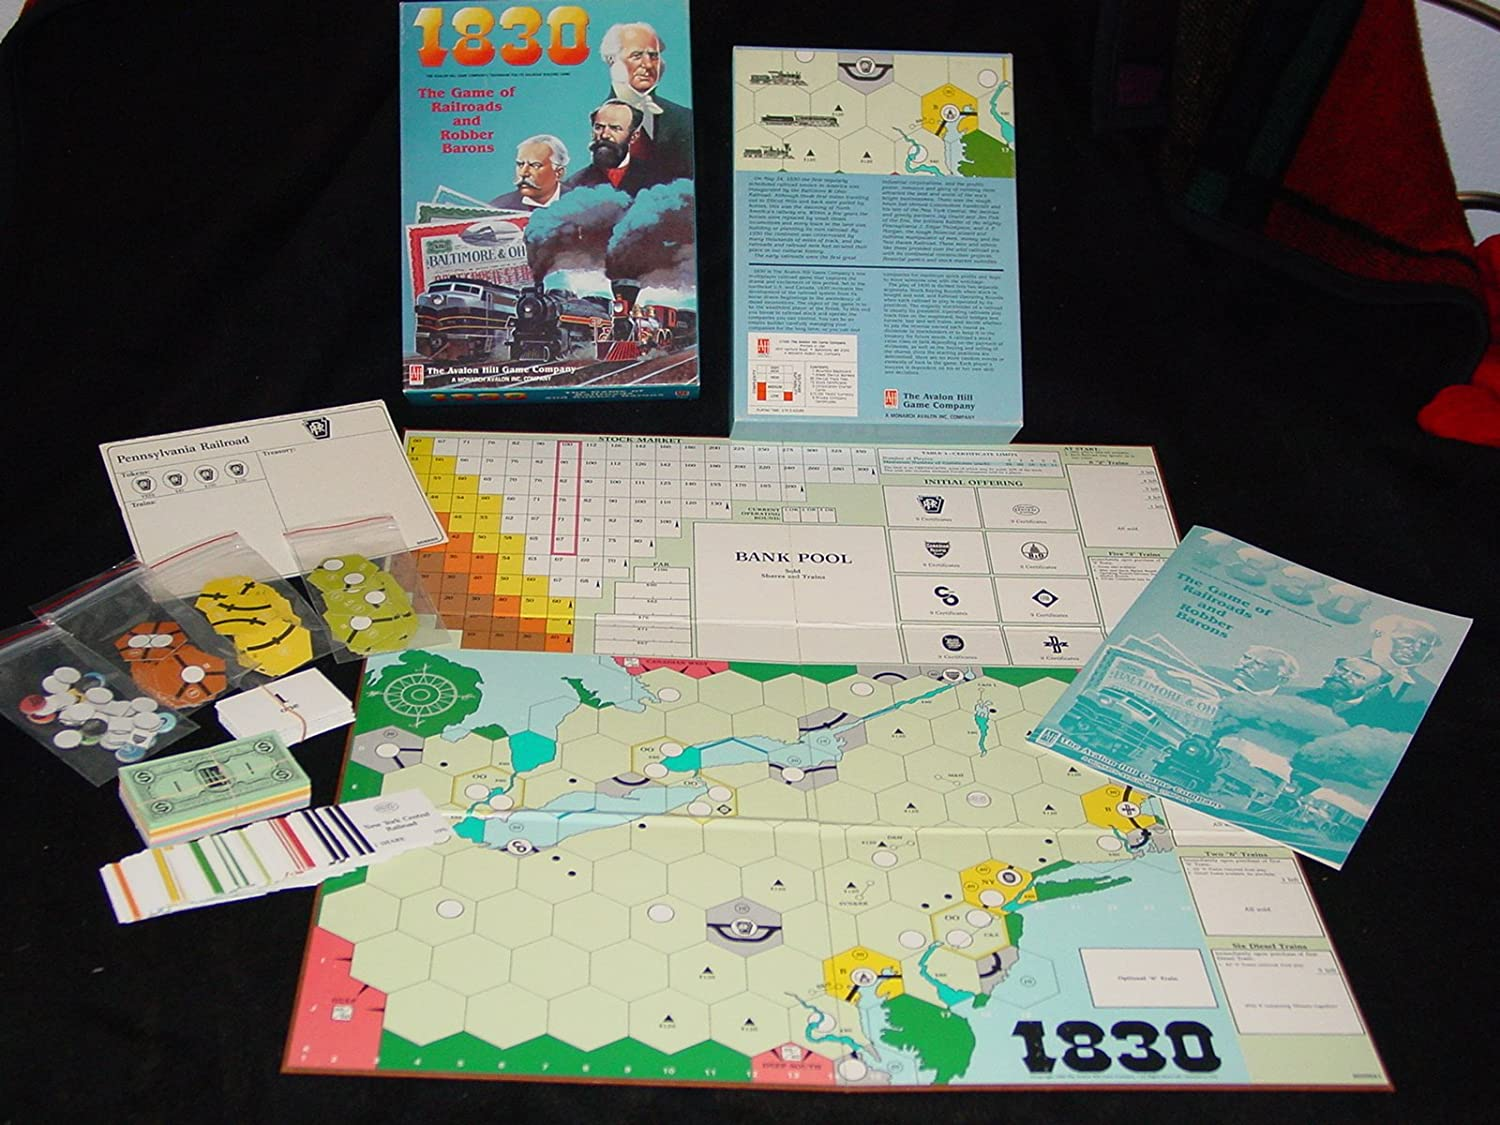 Avalon Hill - 1830 the Game of Railroads & Robber Barons by Avalon Hill: Amazon.es: Juguetes y juegos